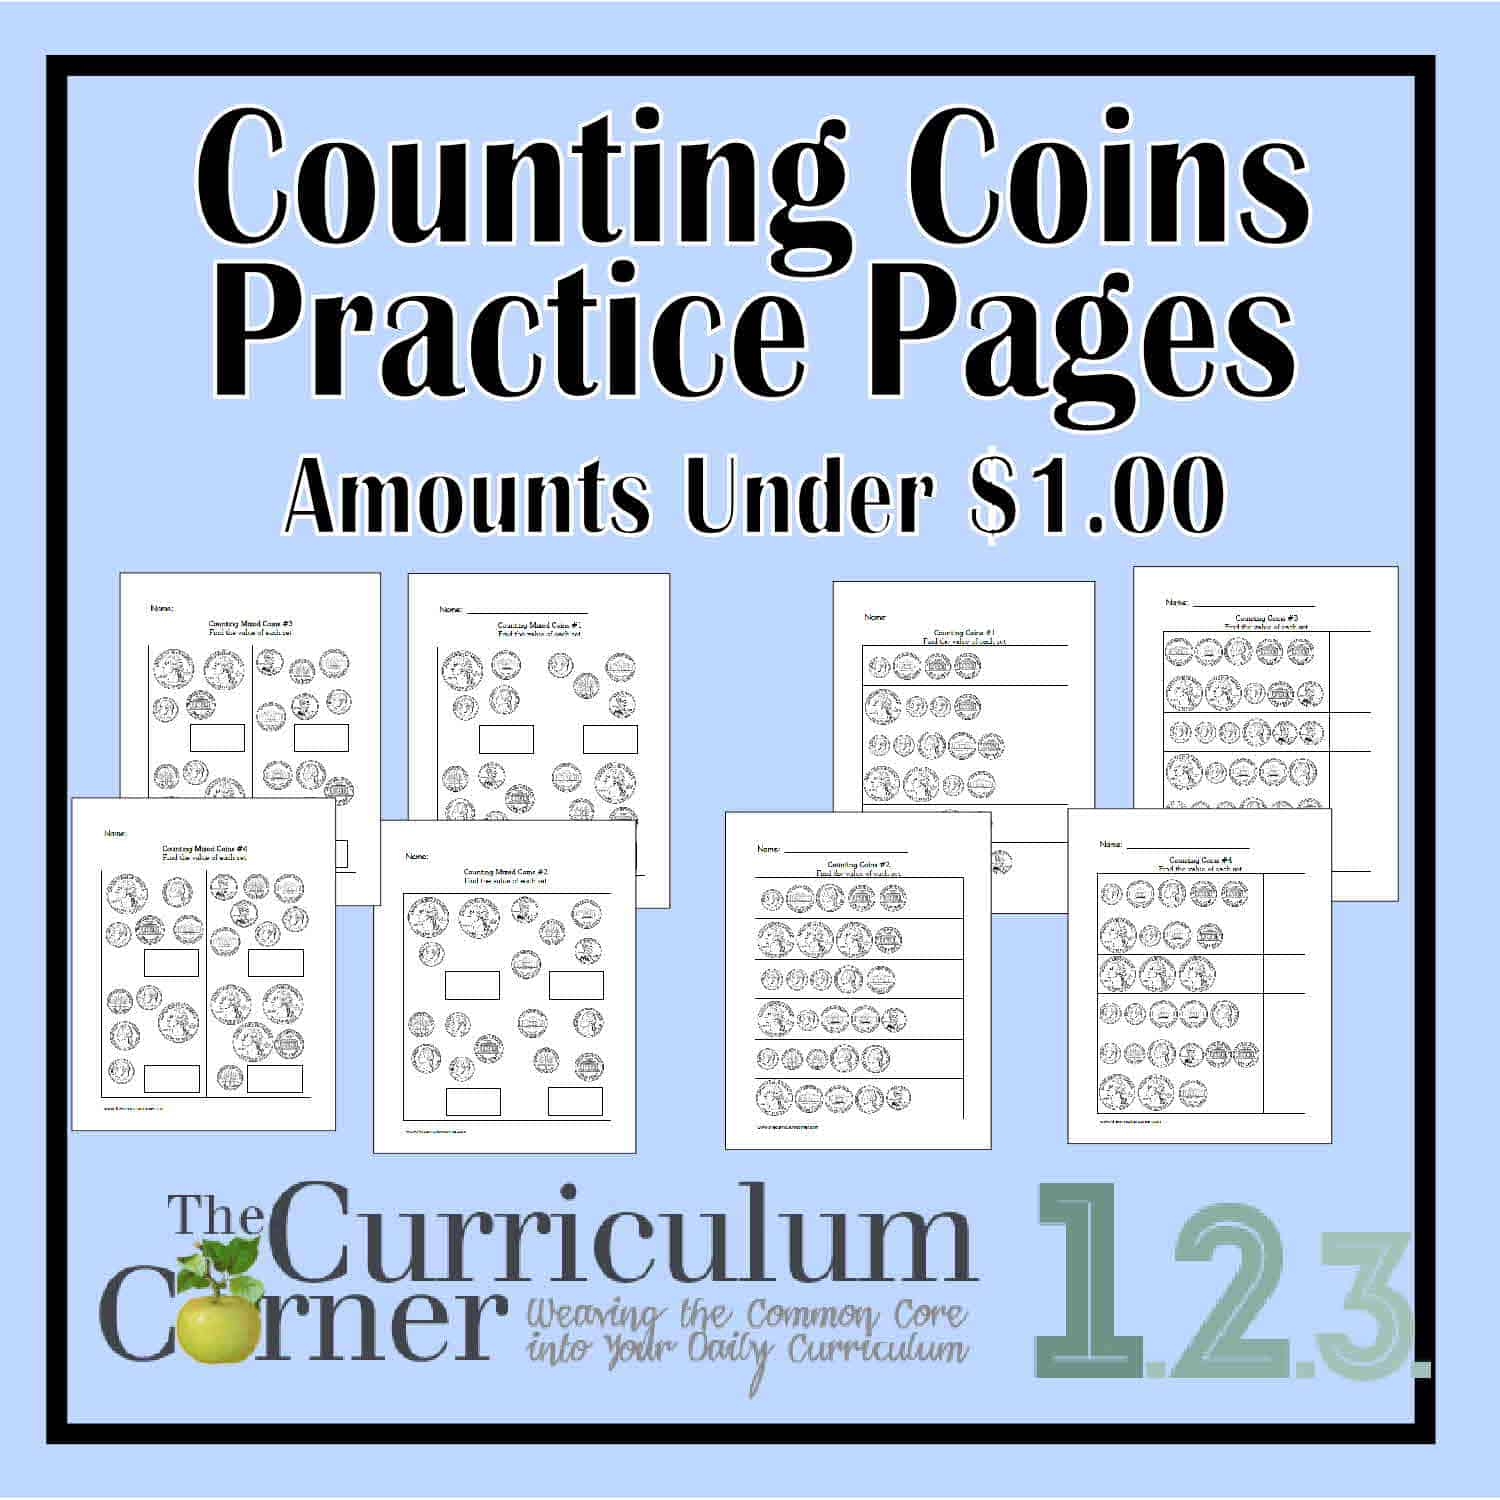 Counting Coins Practice Pages – Amounts Under $1.00